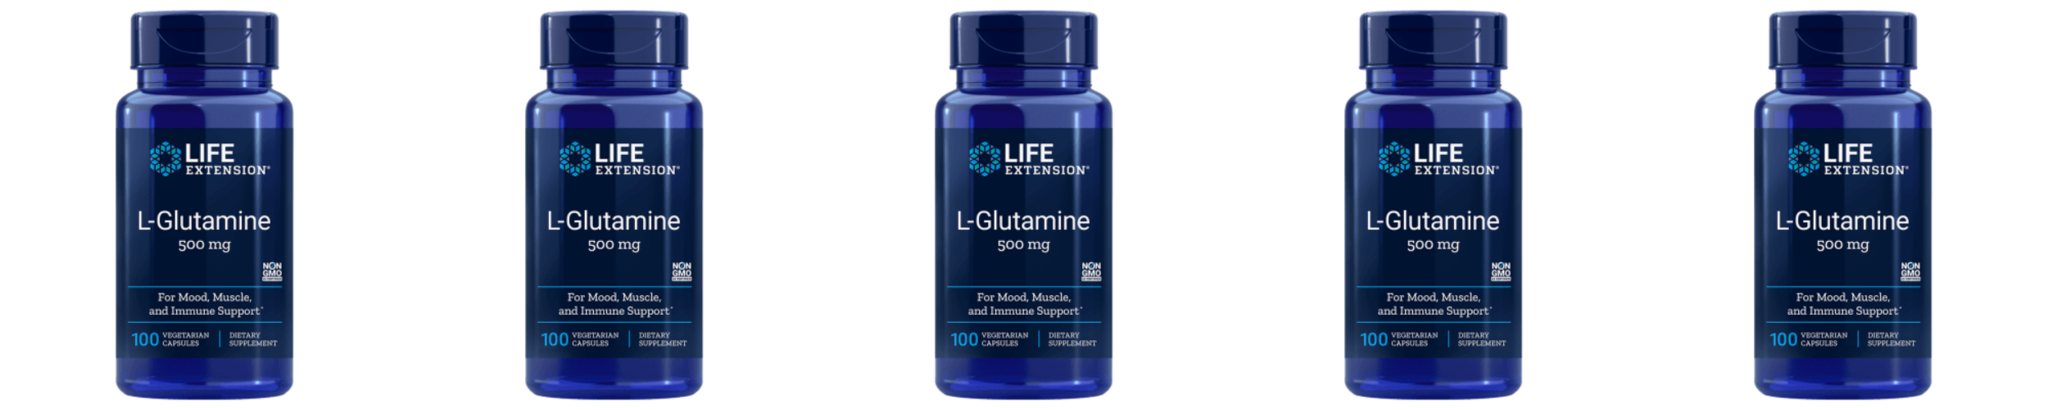 Life Extension L-Glutamine, 500 Mg 100 Capsules, 5-pack